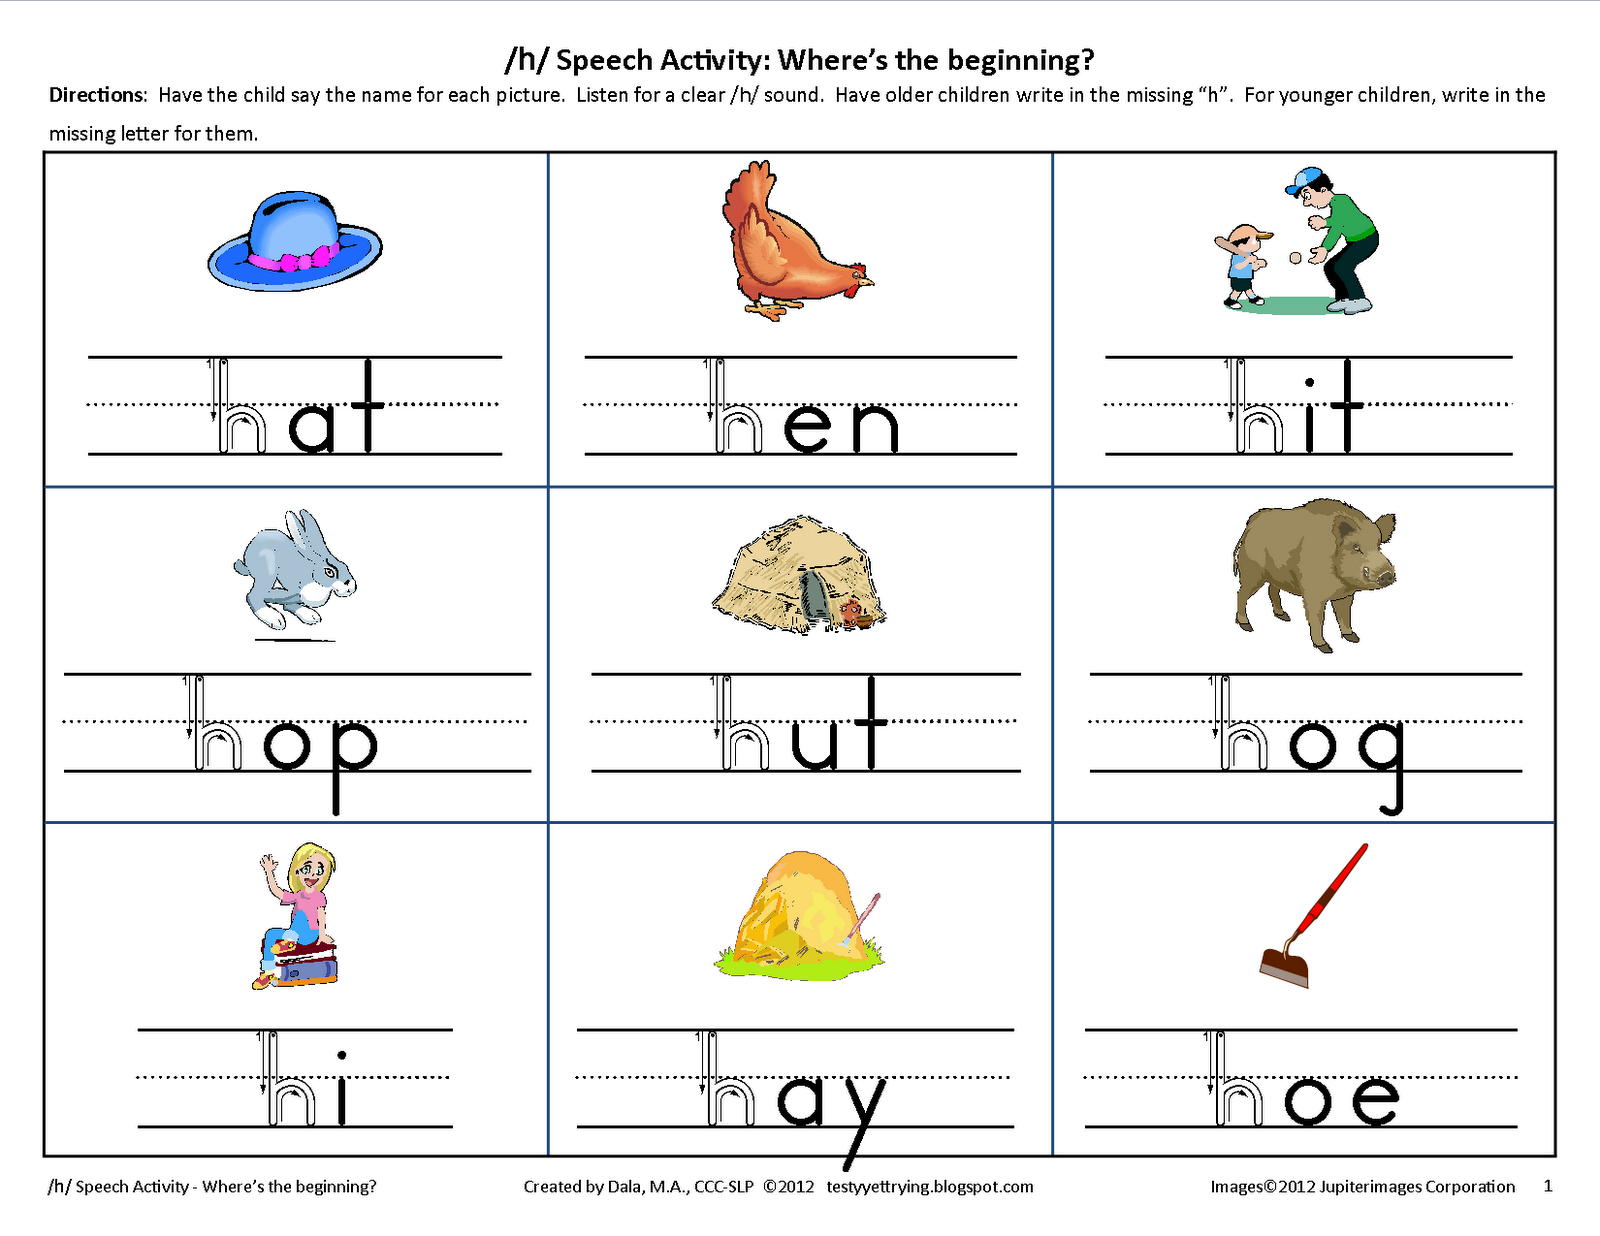 Proatmealus  Unique Testy Yet Trying Initial H Speech Worksheet With Gorgeous Make Classroom Teachers Happy Reinforce Phonics And Handwriting And Practice Speech All At The Same Time With Beautiful English Worksheets Adjectives Also Words Ending In Y Worksheets In Addition Push Pull Forces Worksheet And Worksheets Esl As Well As Paragraphs Worksheets Additionally Worksheets On Active And Passive Voice For Grade  From Testyyettryingblogspotcom With Proatmealus  Gorgeous Testy Yet Trying Initial H Speech Worksheet With Beautiful Make Classroom Teachers Happy Reinforce Phonics And Handwriting And Practice Speech All At The Same Time And Unique English Worksheets Adjectives Also Words Ending In Y Worksheets In Addition Push Pull Forces Worksheet From Testyyettryingblogspotcom